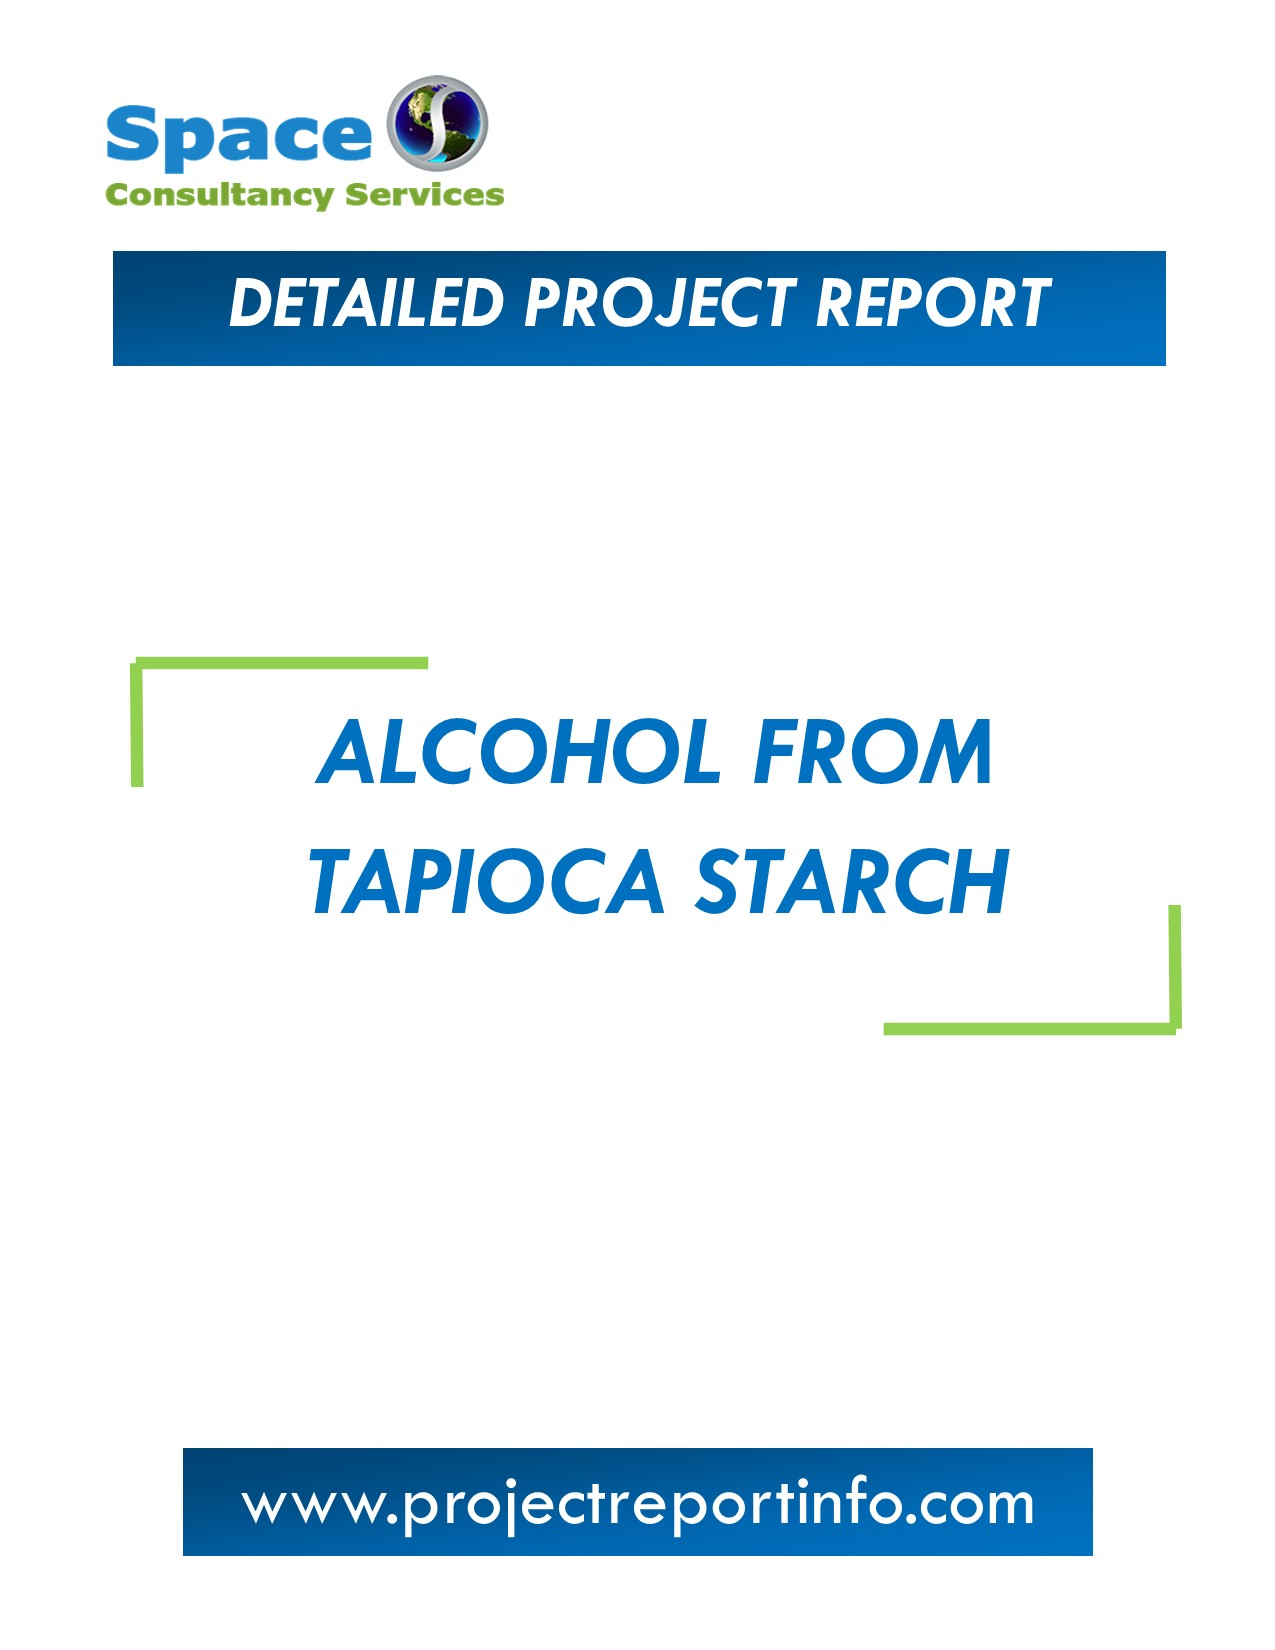 Project Report on Alcohol From Tapioca Starch Plant